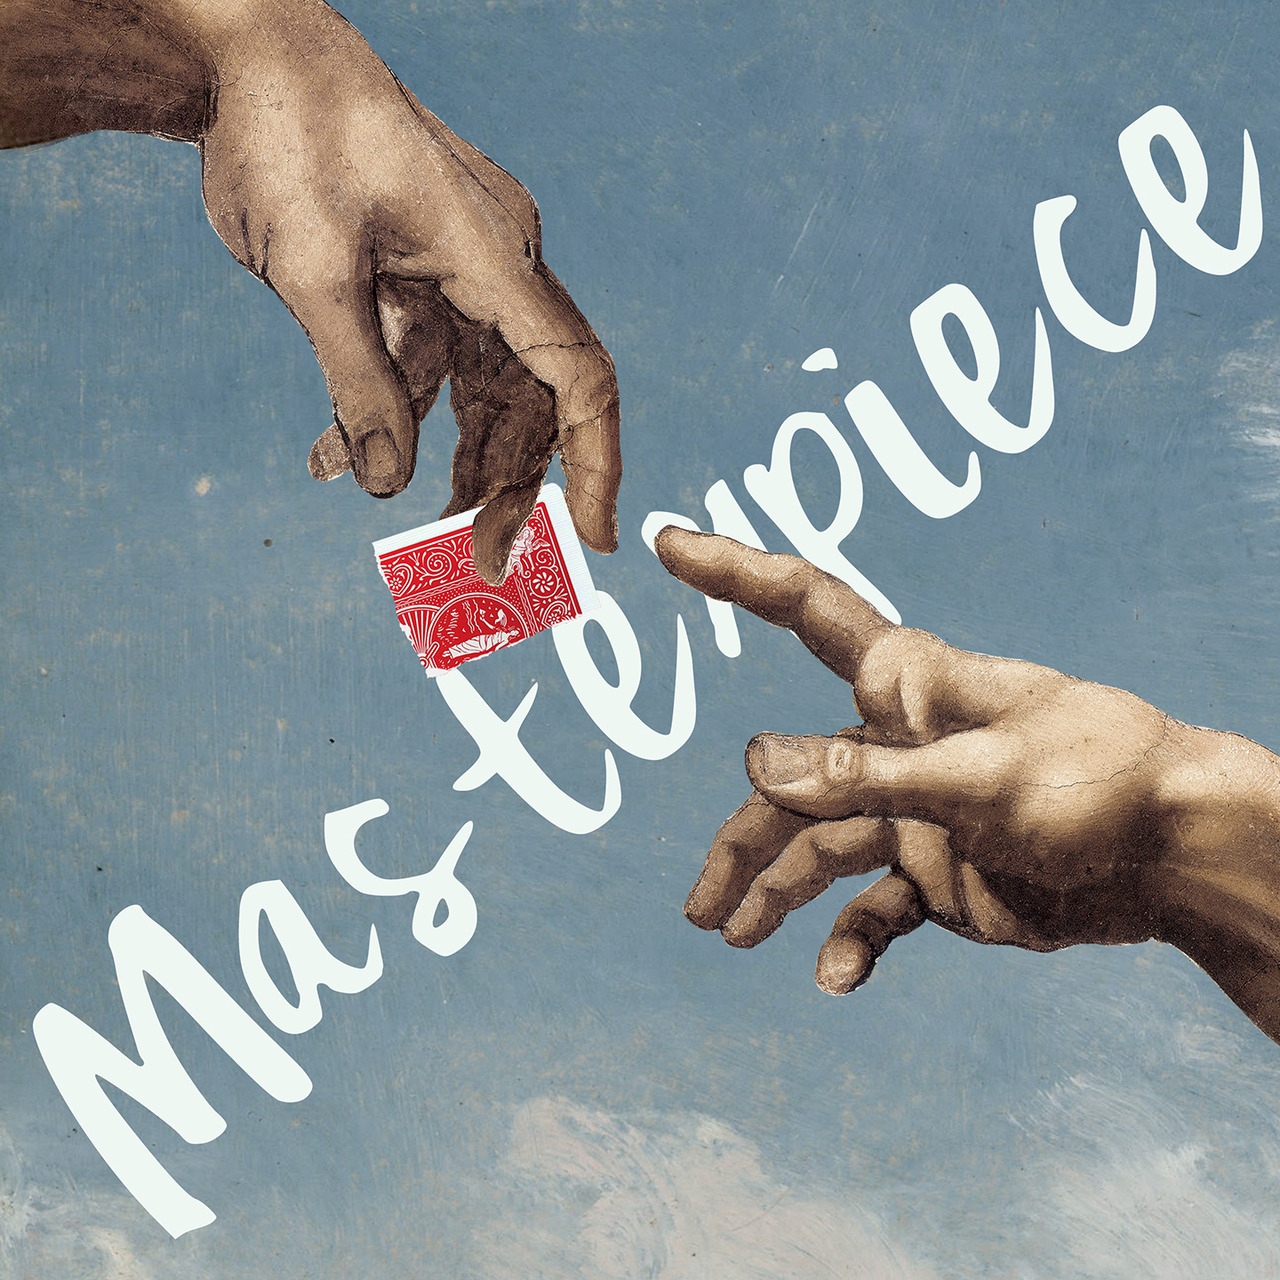 Masterpiece by Rick Lax (Instant Download)